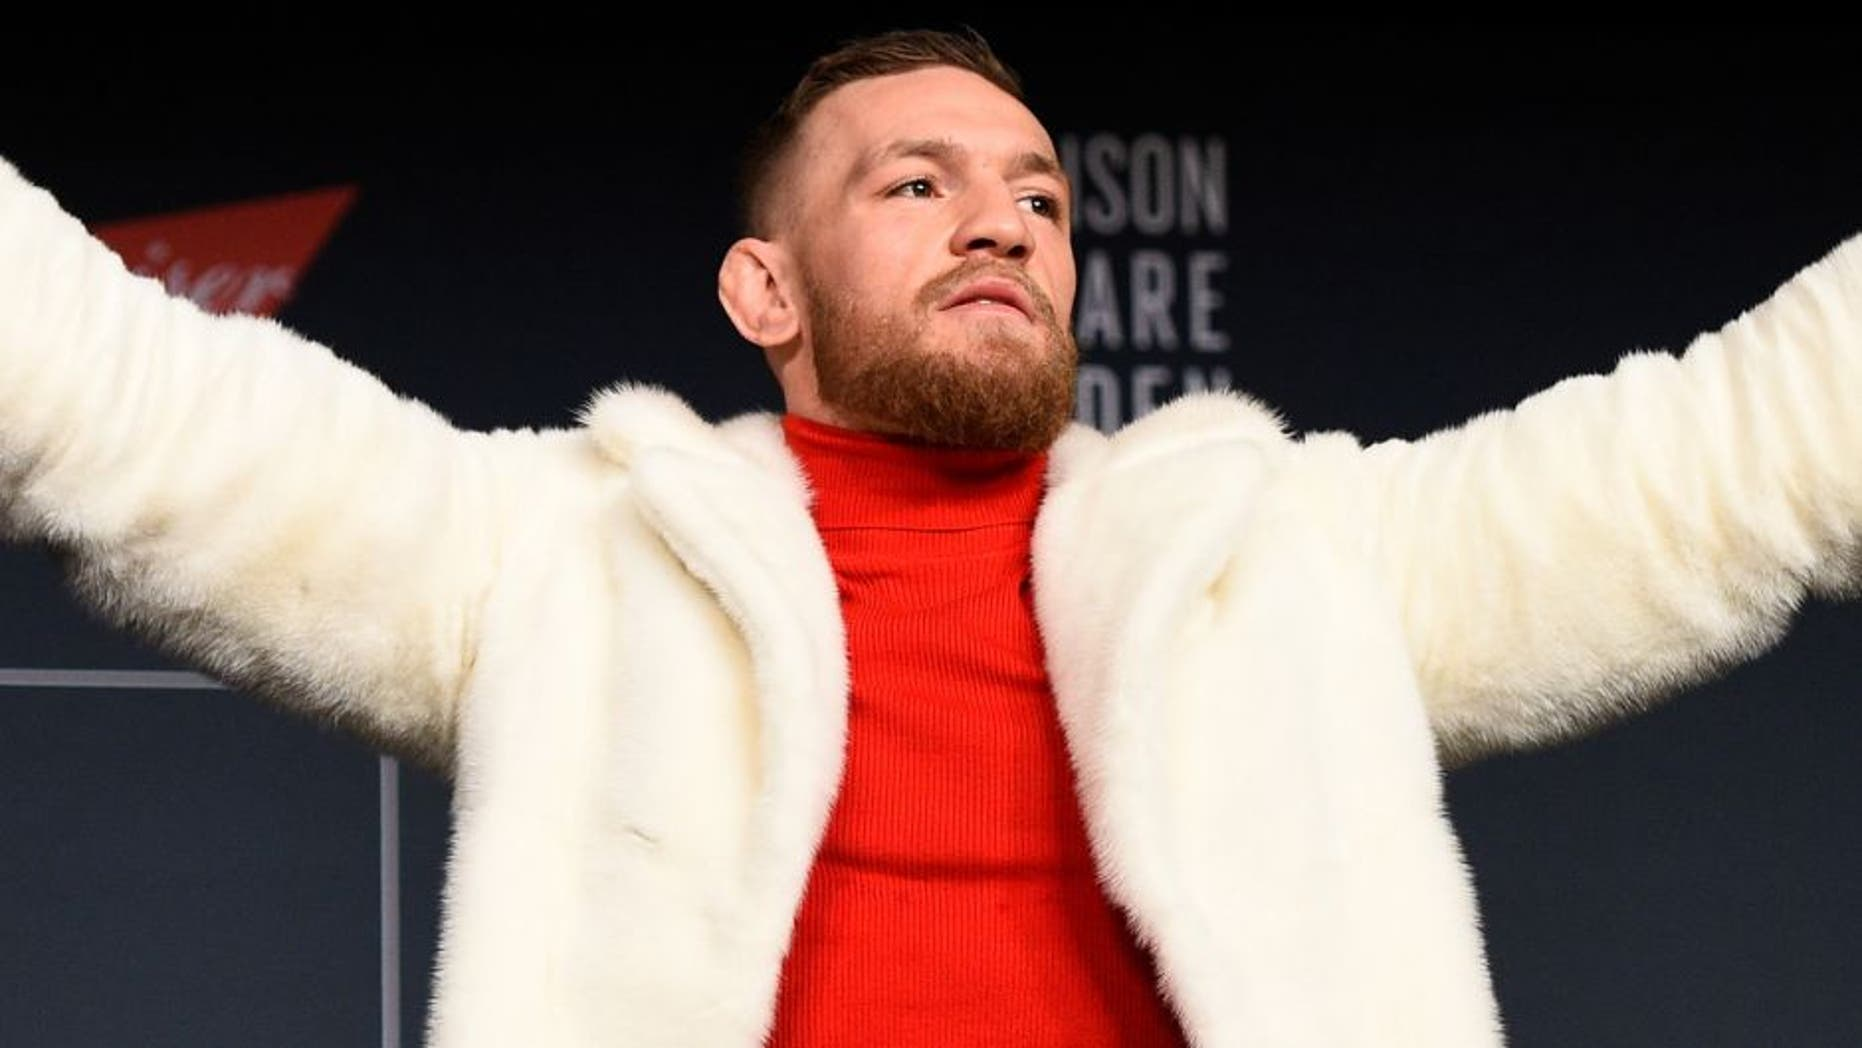 NEW YORK, NY - NOVEMBER 10: UFC featherweight champion Conor McGregor of Ireland interacts with fans and media during the UFC 205 press conference inside The Theater at Madison Square Garden on November 10, 2016 in New York City. (Photo by Jeff Bottari/Zuffa LLC/Zuffa LLC via Getty Images)